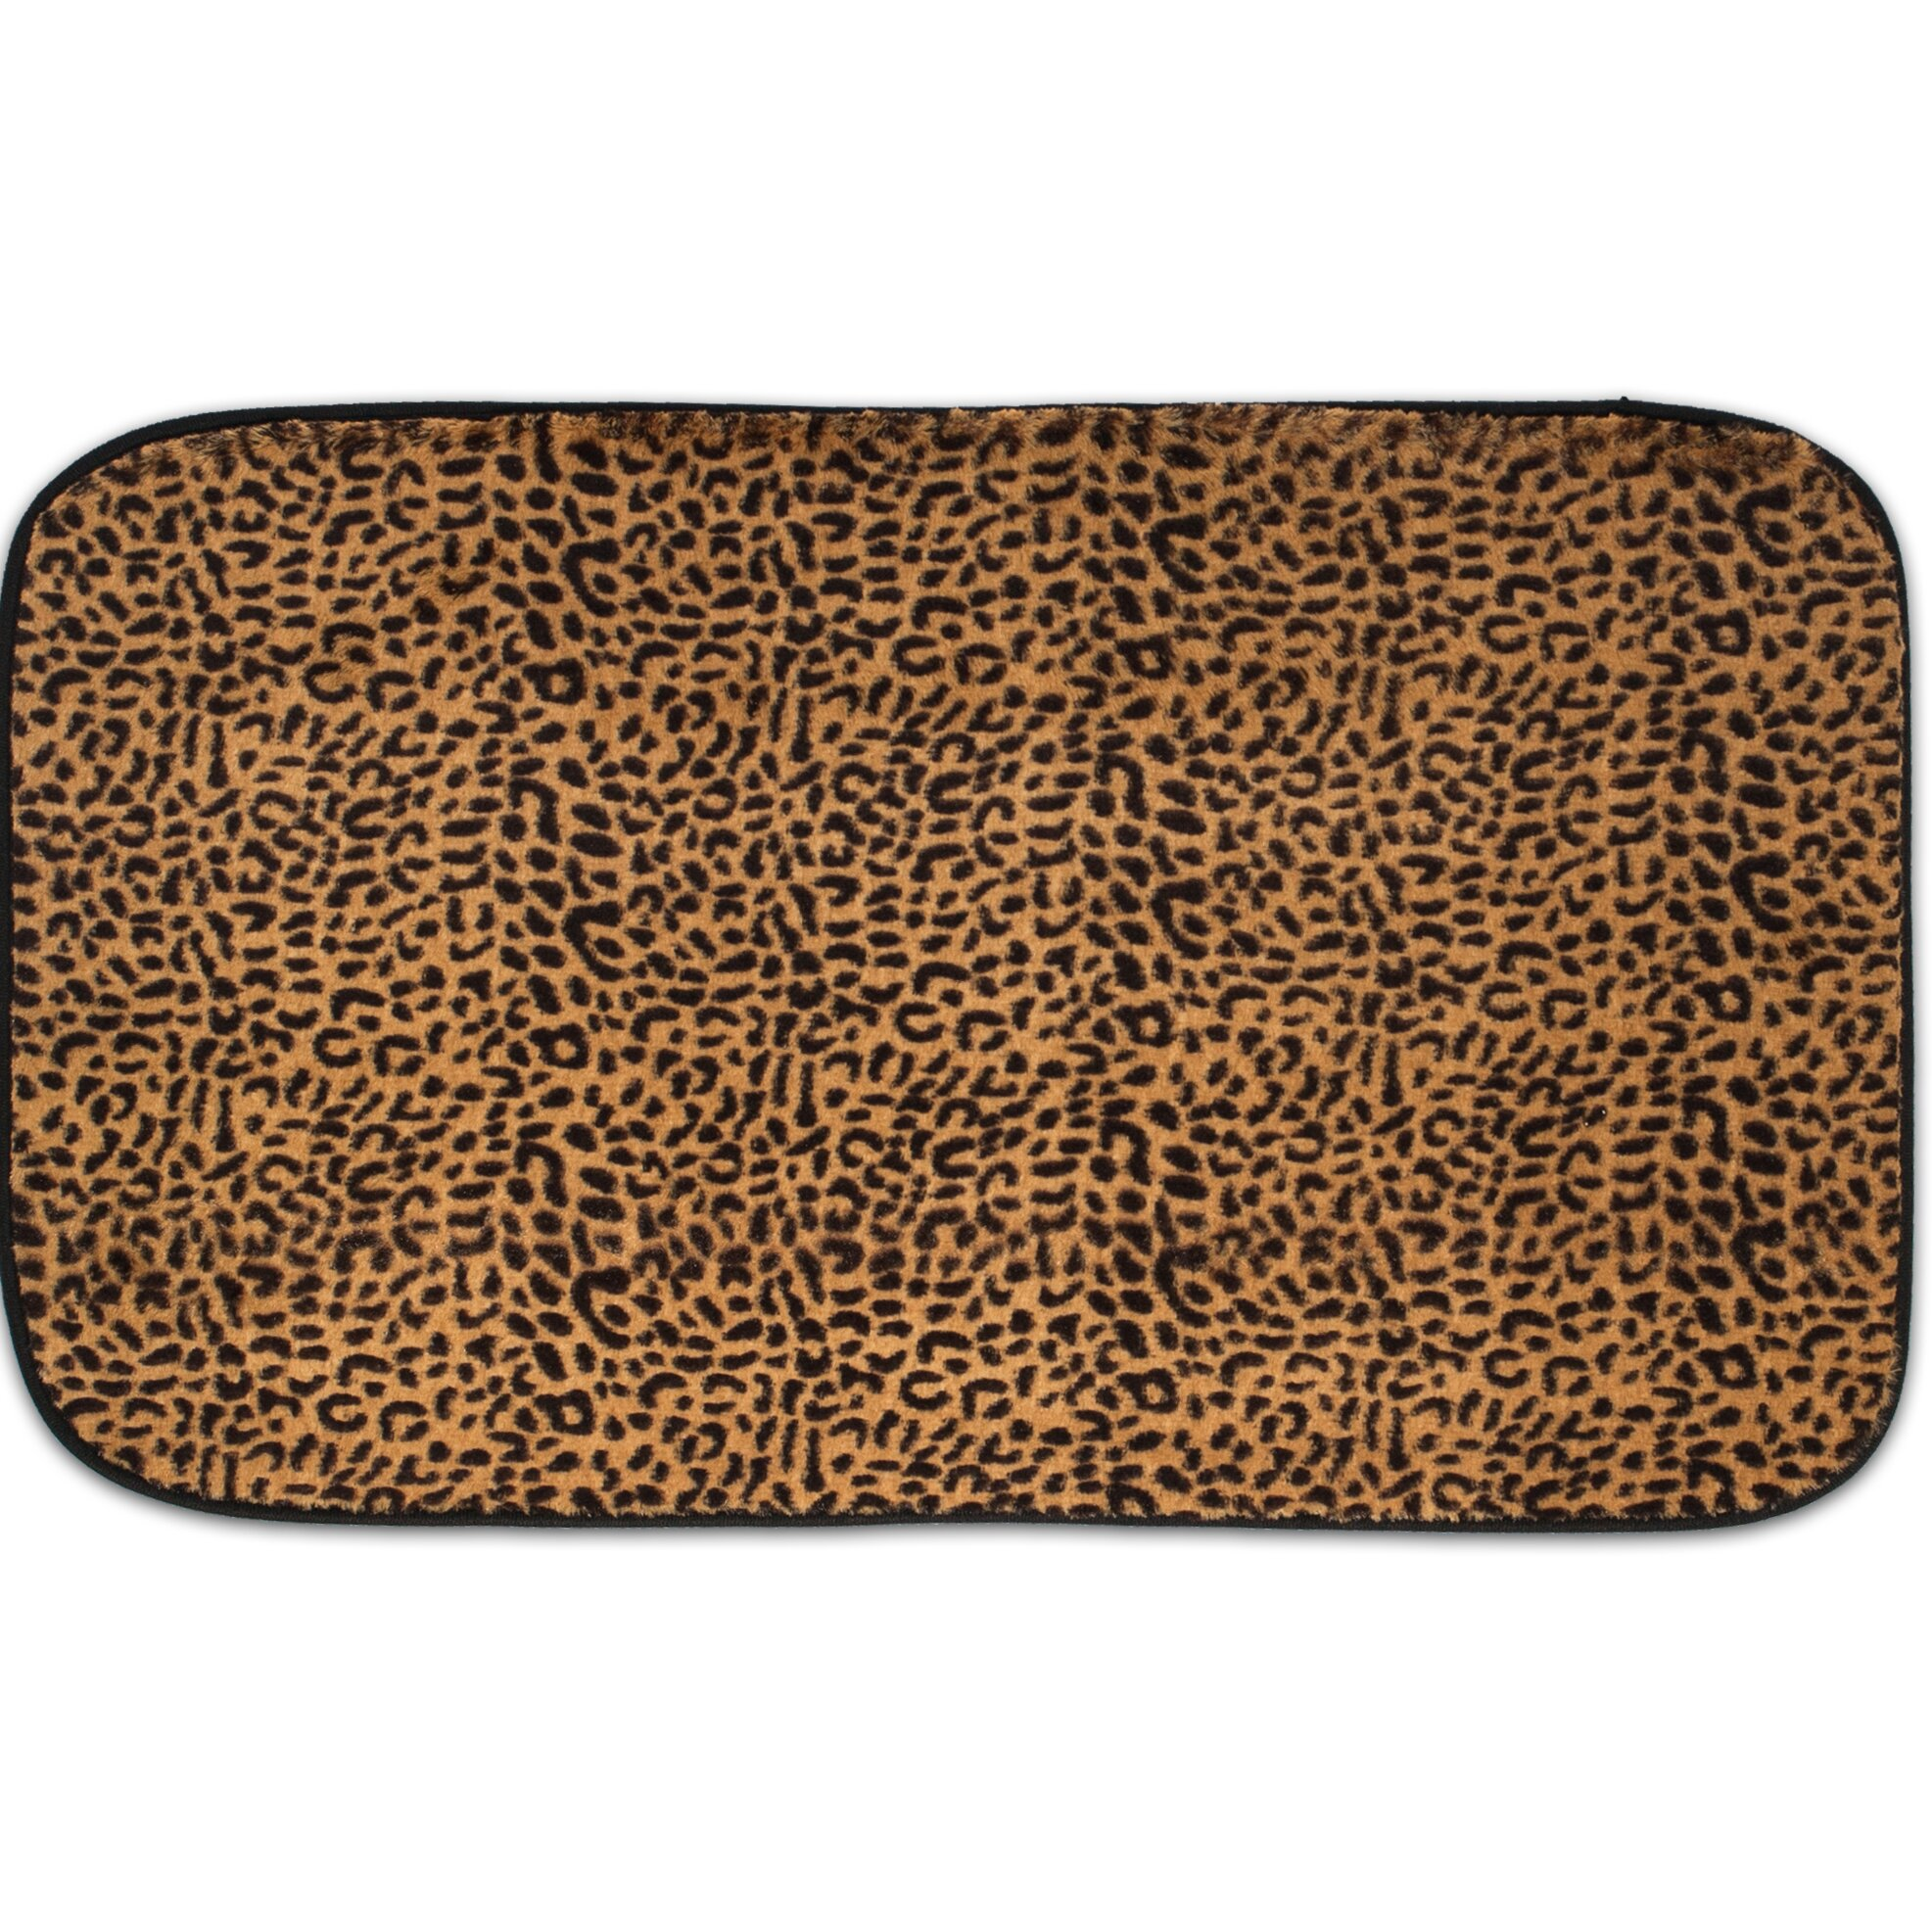 Popular If You Prefer The Durability And Ease Of Care Of Memory Bath Rugs Fit The Bill Our Memory Rugs Come With A Skid Resistant Backing That Adds A Measure Microfiber Bath Mat Soaks Up Water Like A Sponge Before Your Foot Hits The Floor